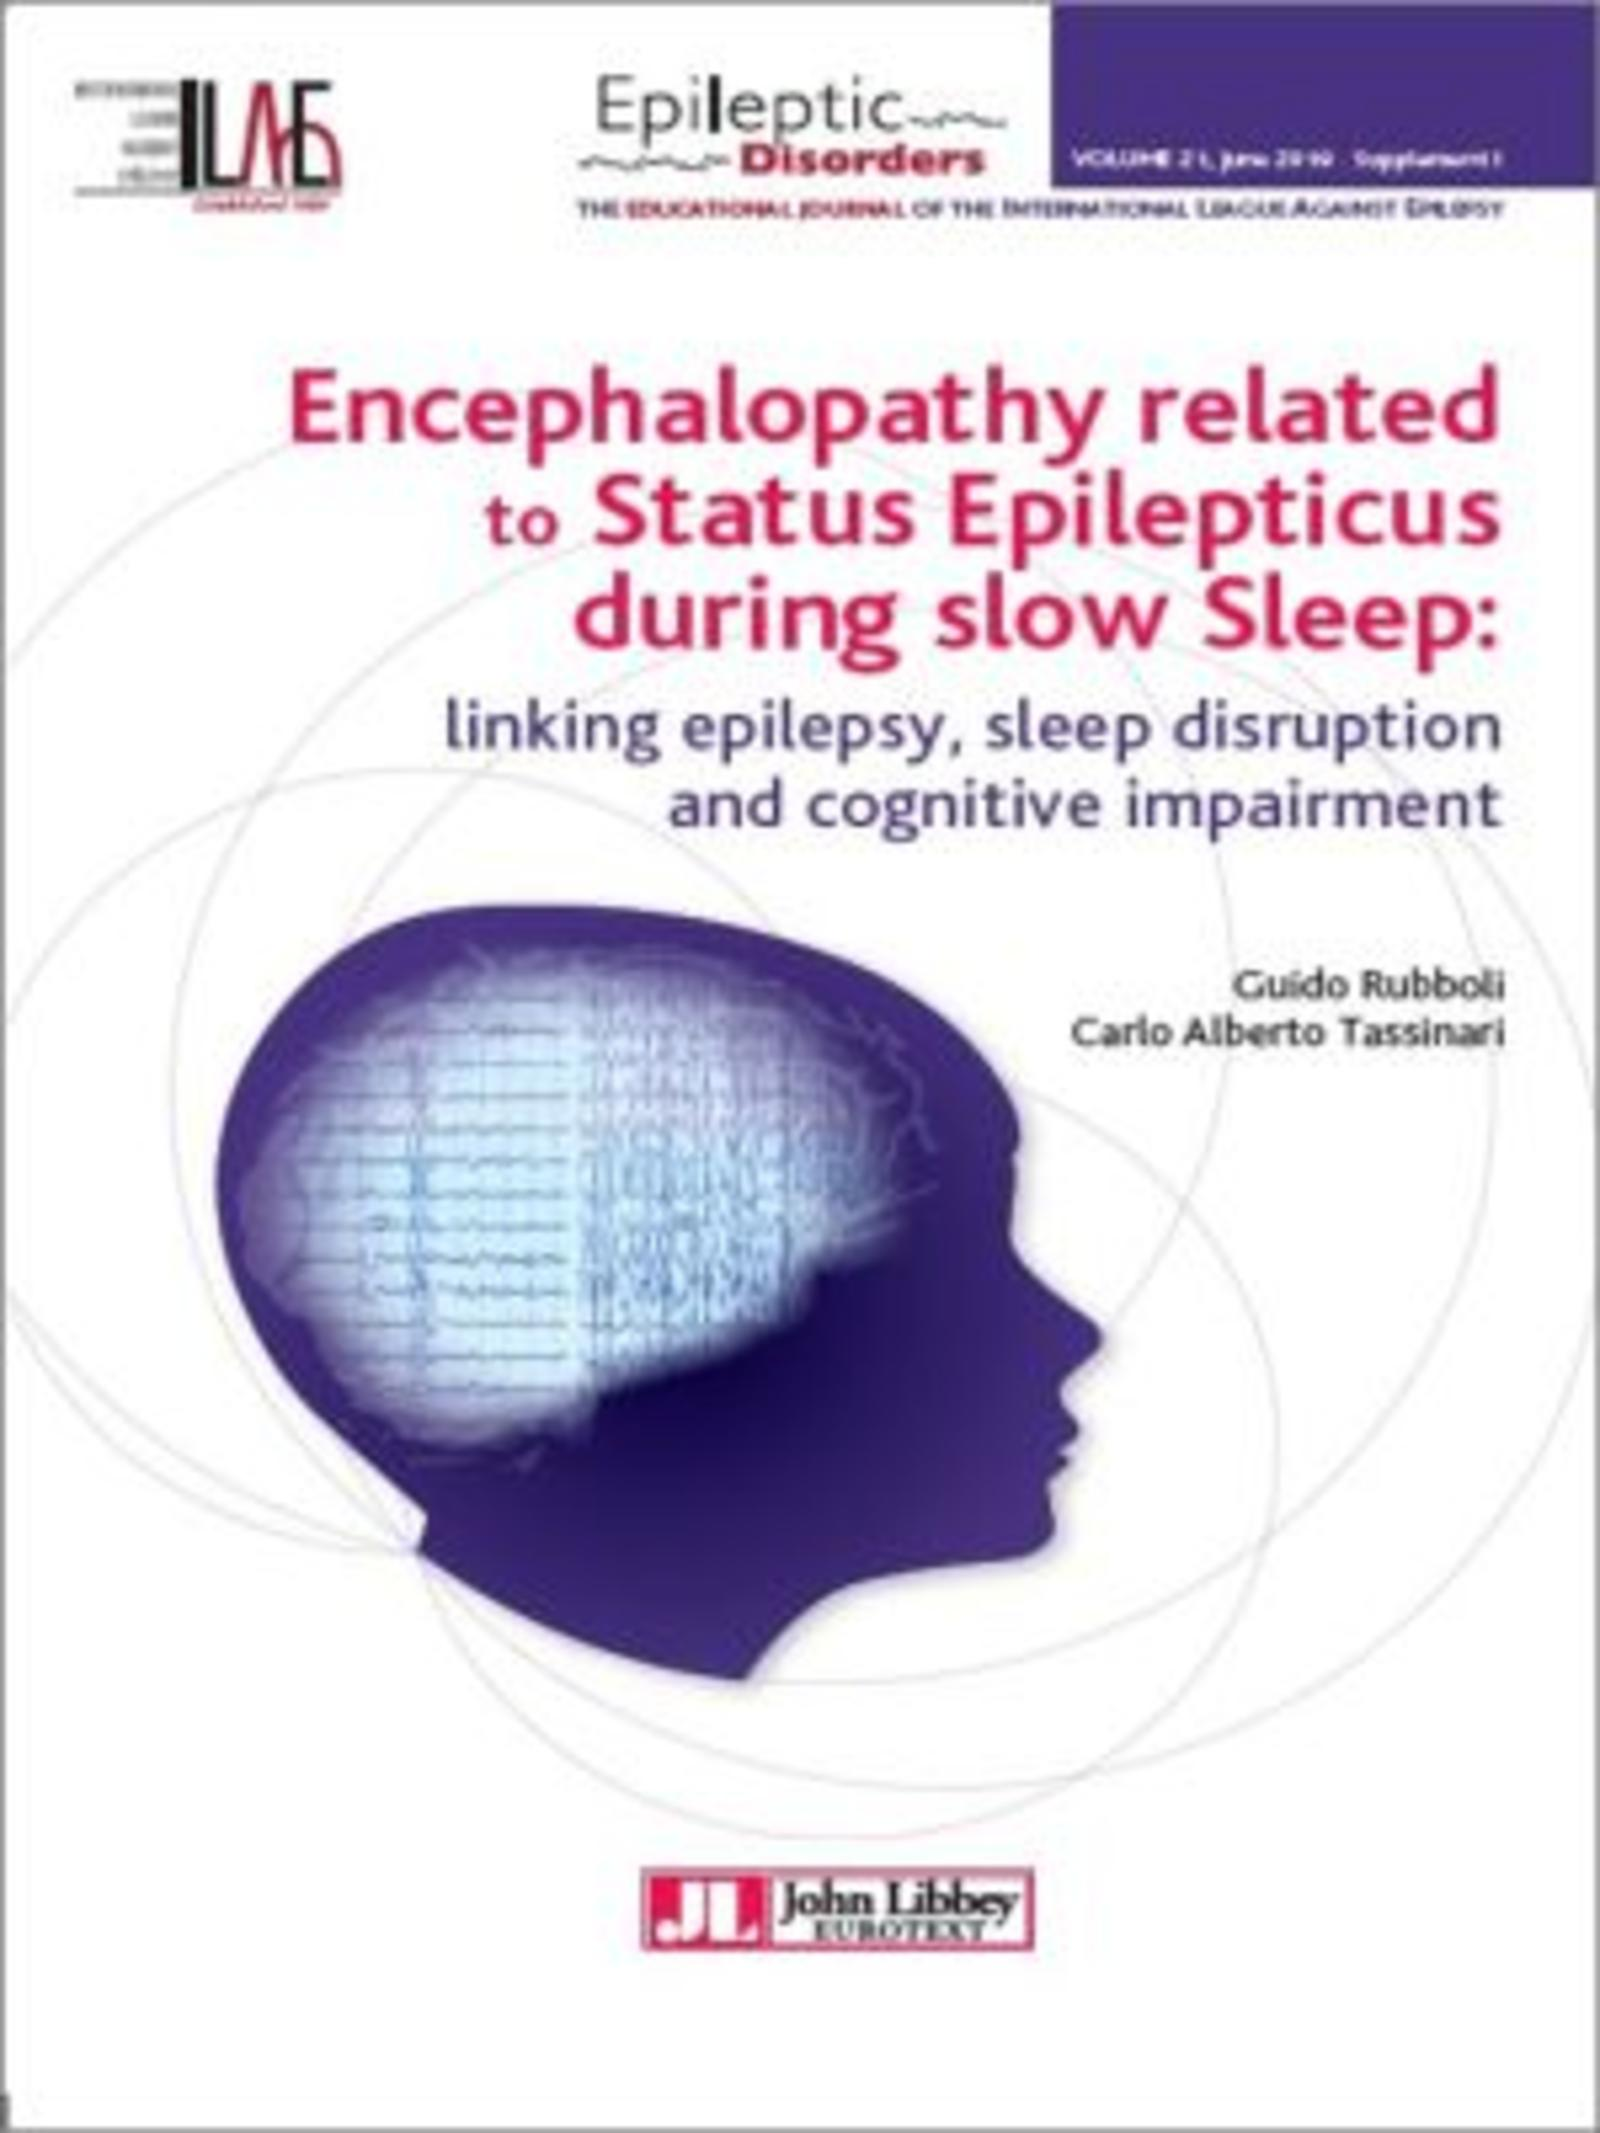 Encephalopathy related to Status Epilepticus during slow Sleep